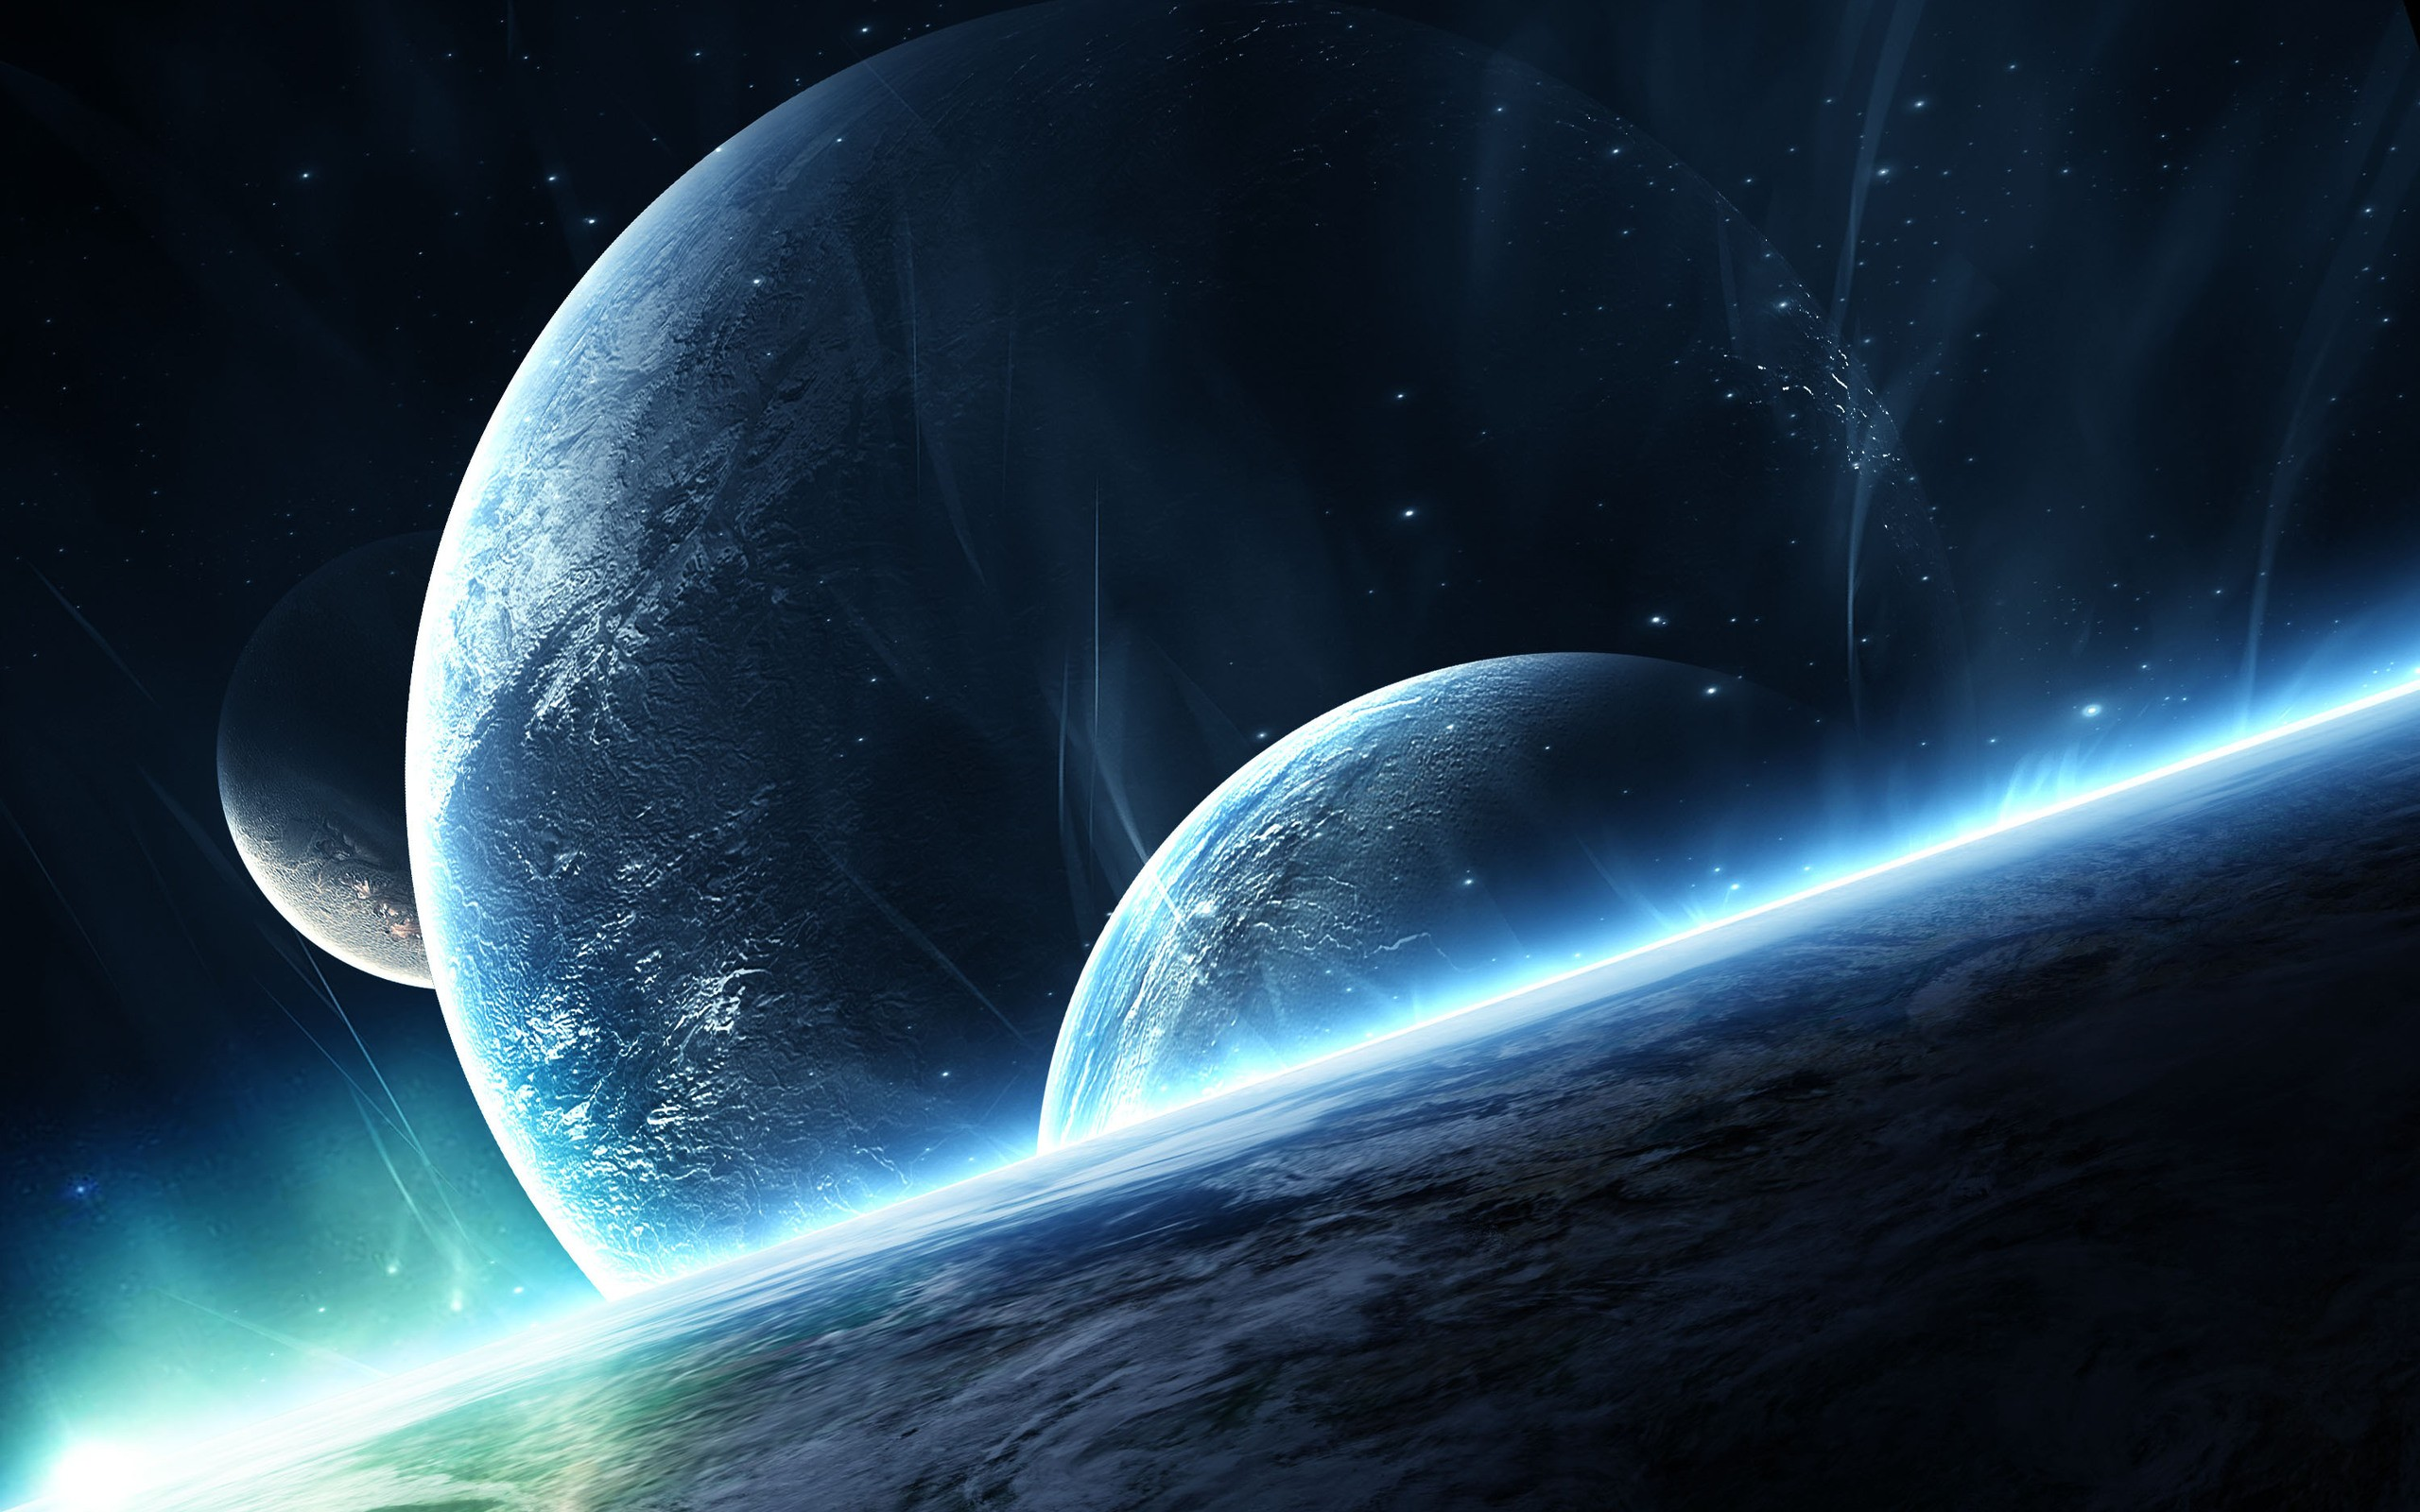 Space Wallpaper In Hd